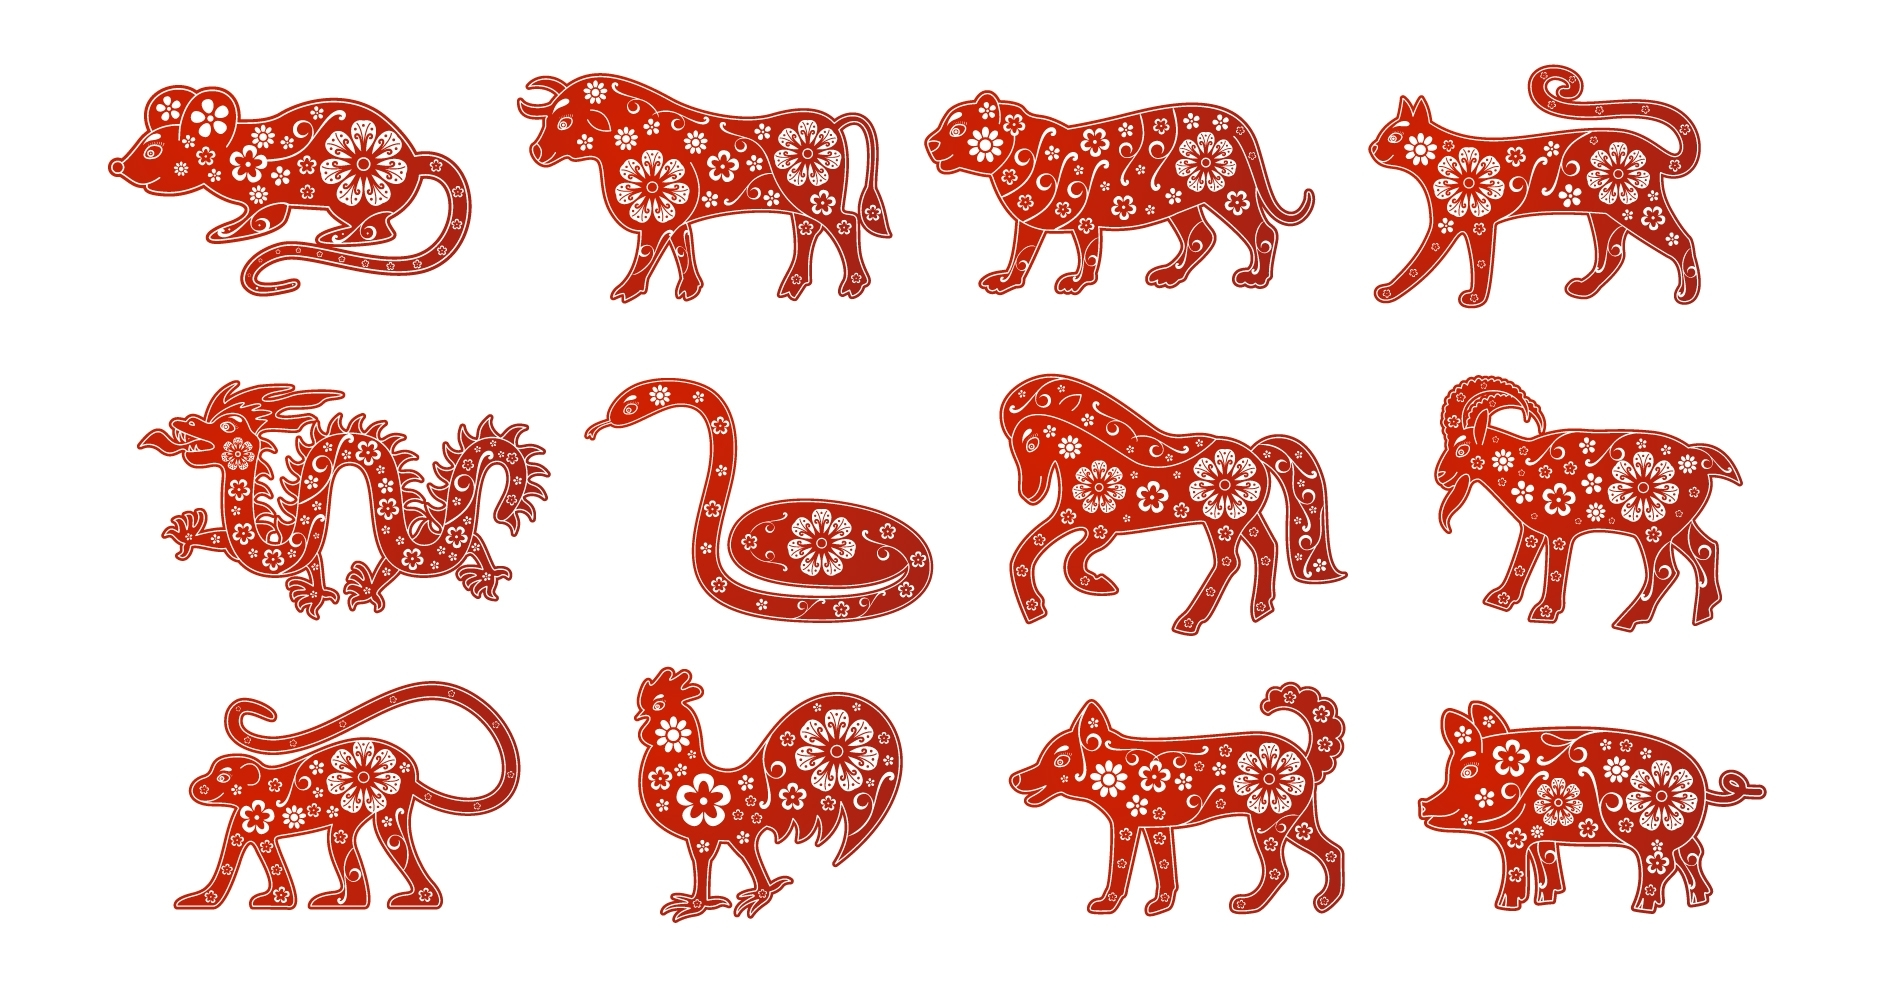 The Chinese Zodiac Signs: Are You A Dragon Or A Snake